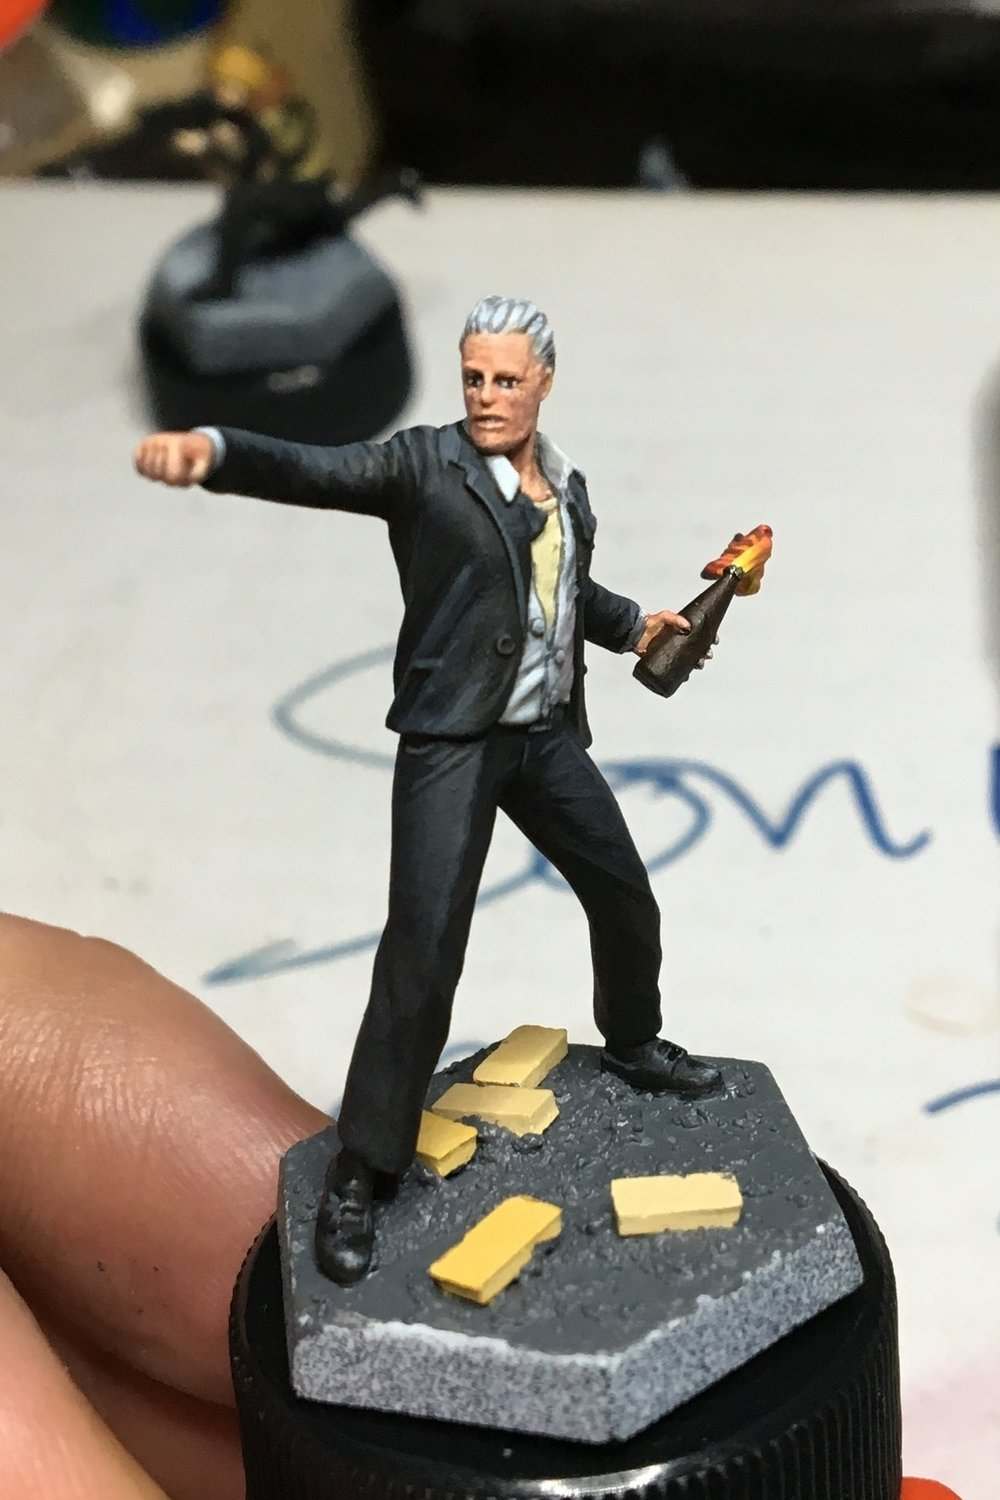 Suit attempt 1, grey highlighting. Very flat and boring.